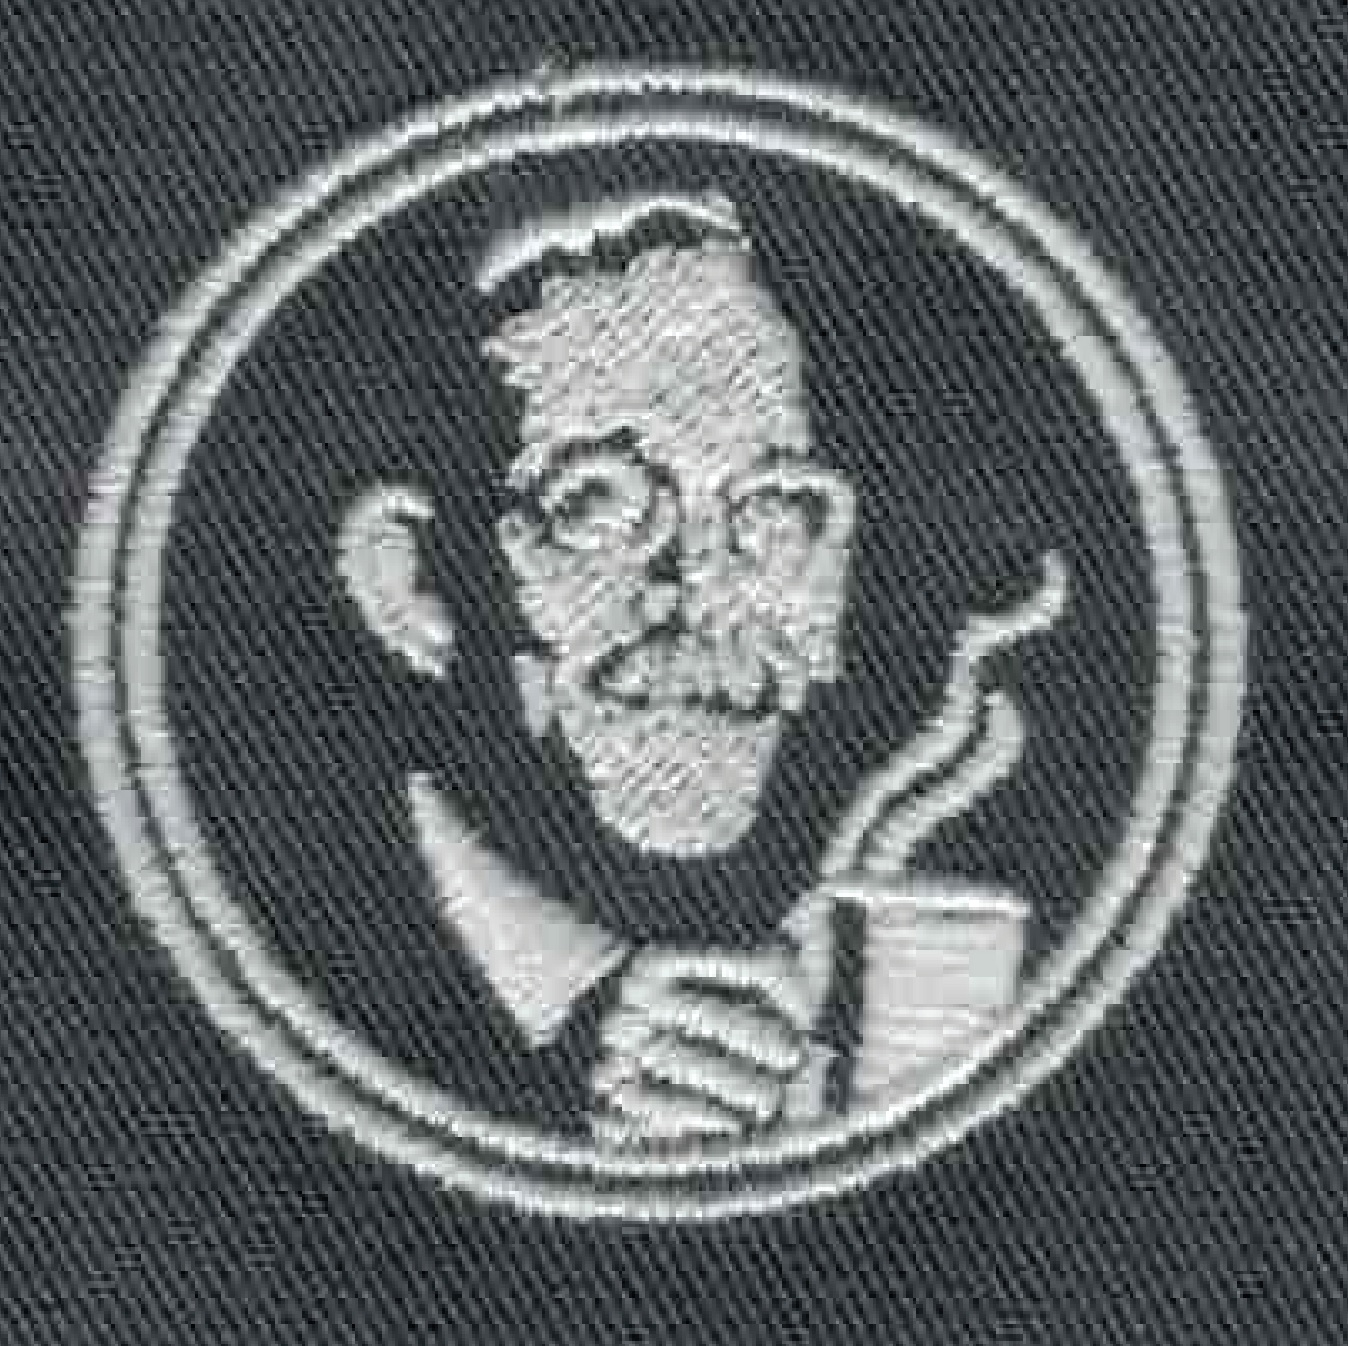 - As you can see, the resulting artwork appears drastically different from its original design. With no dimension, the embroidery thus effectively loses much of the detail and definition originally incorporated by its designer. The way such a product makes you feel is the same as looking at a large print-out of a low-resolution image